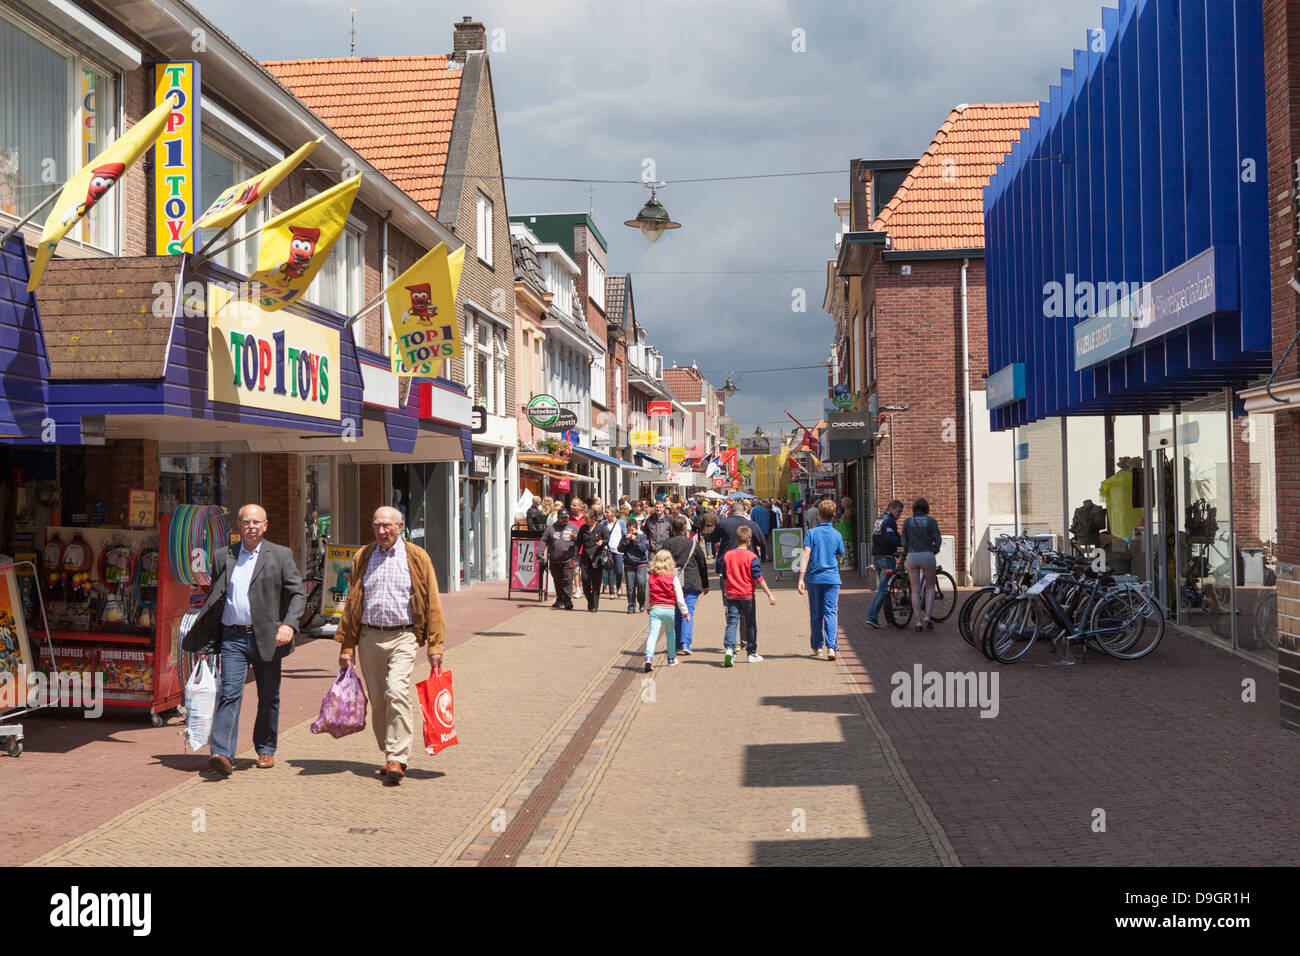 People shopping in the center of the city Winterswijk in the Netherlands - Stock Image